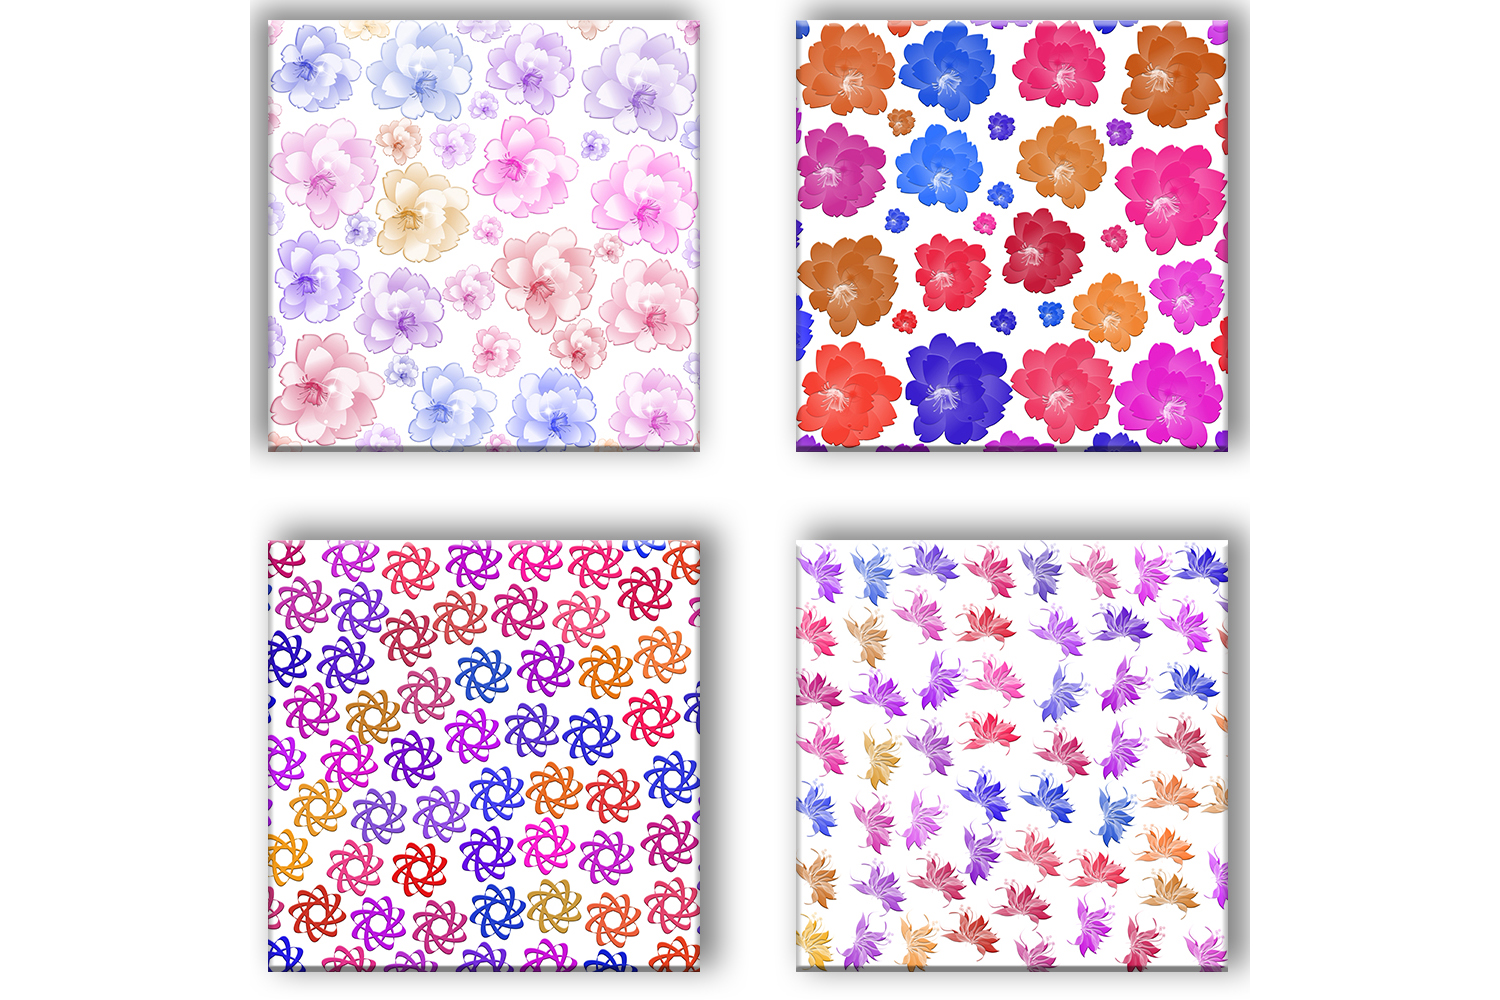 Flowers Patterned, Floral Pattern, Flowers Background example image 4